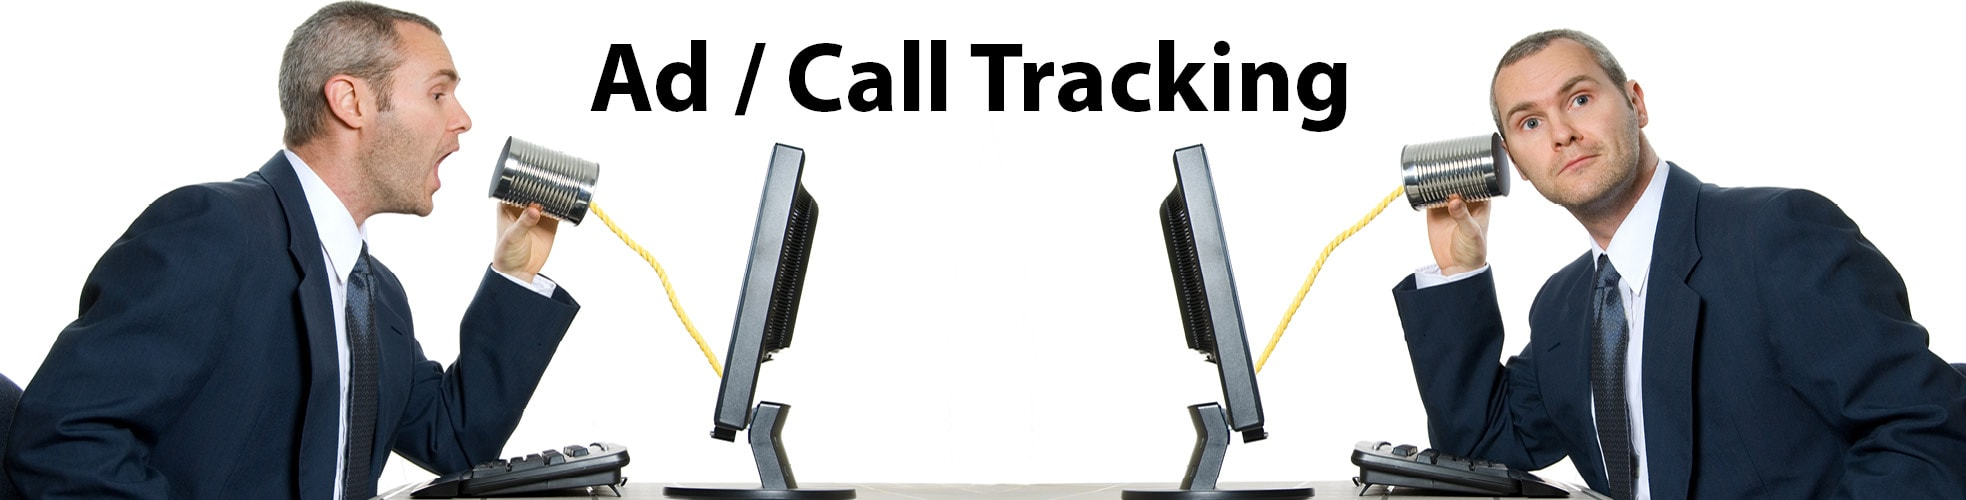 call tracking for small businesses | LMS Solutions